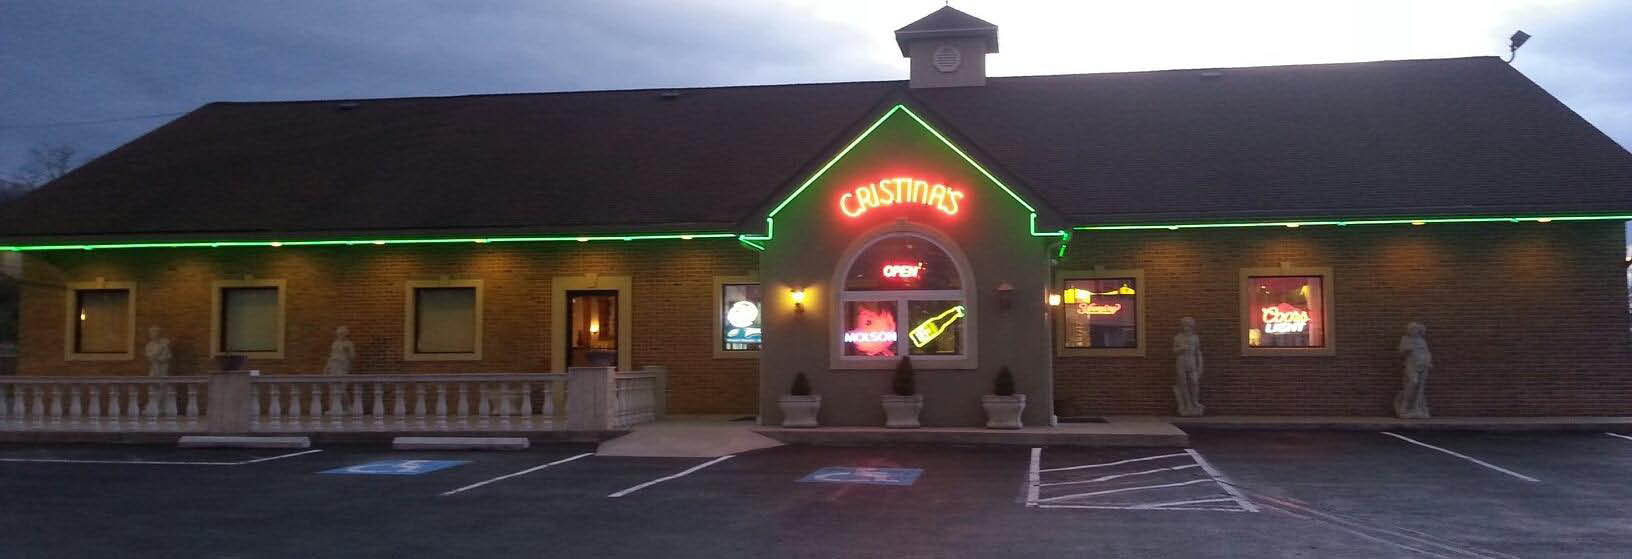 Exterior of Cristina's off Hoch Road in Blandon, PA banner